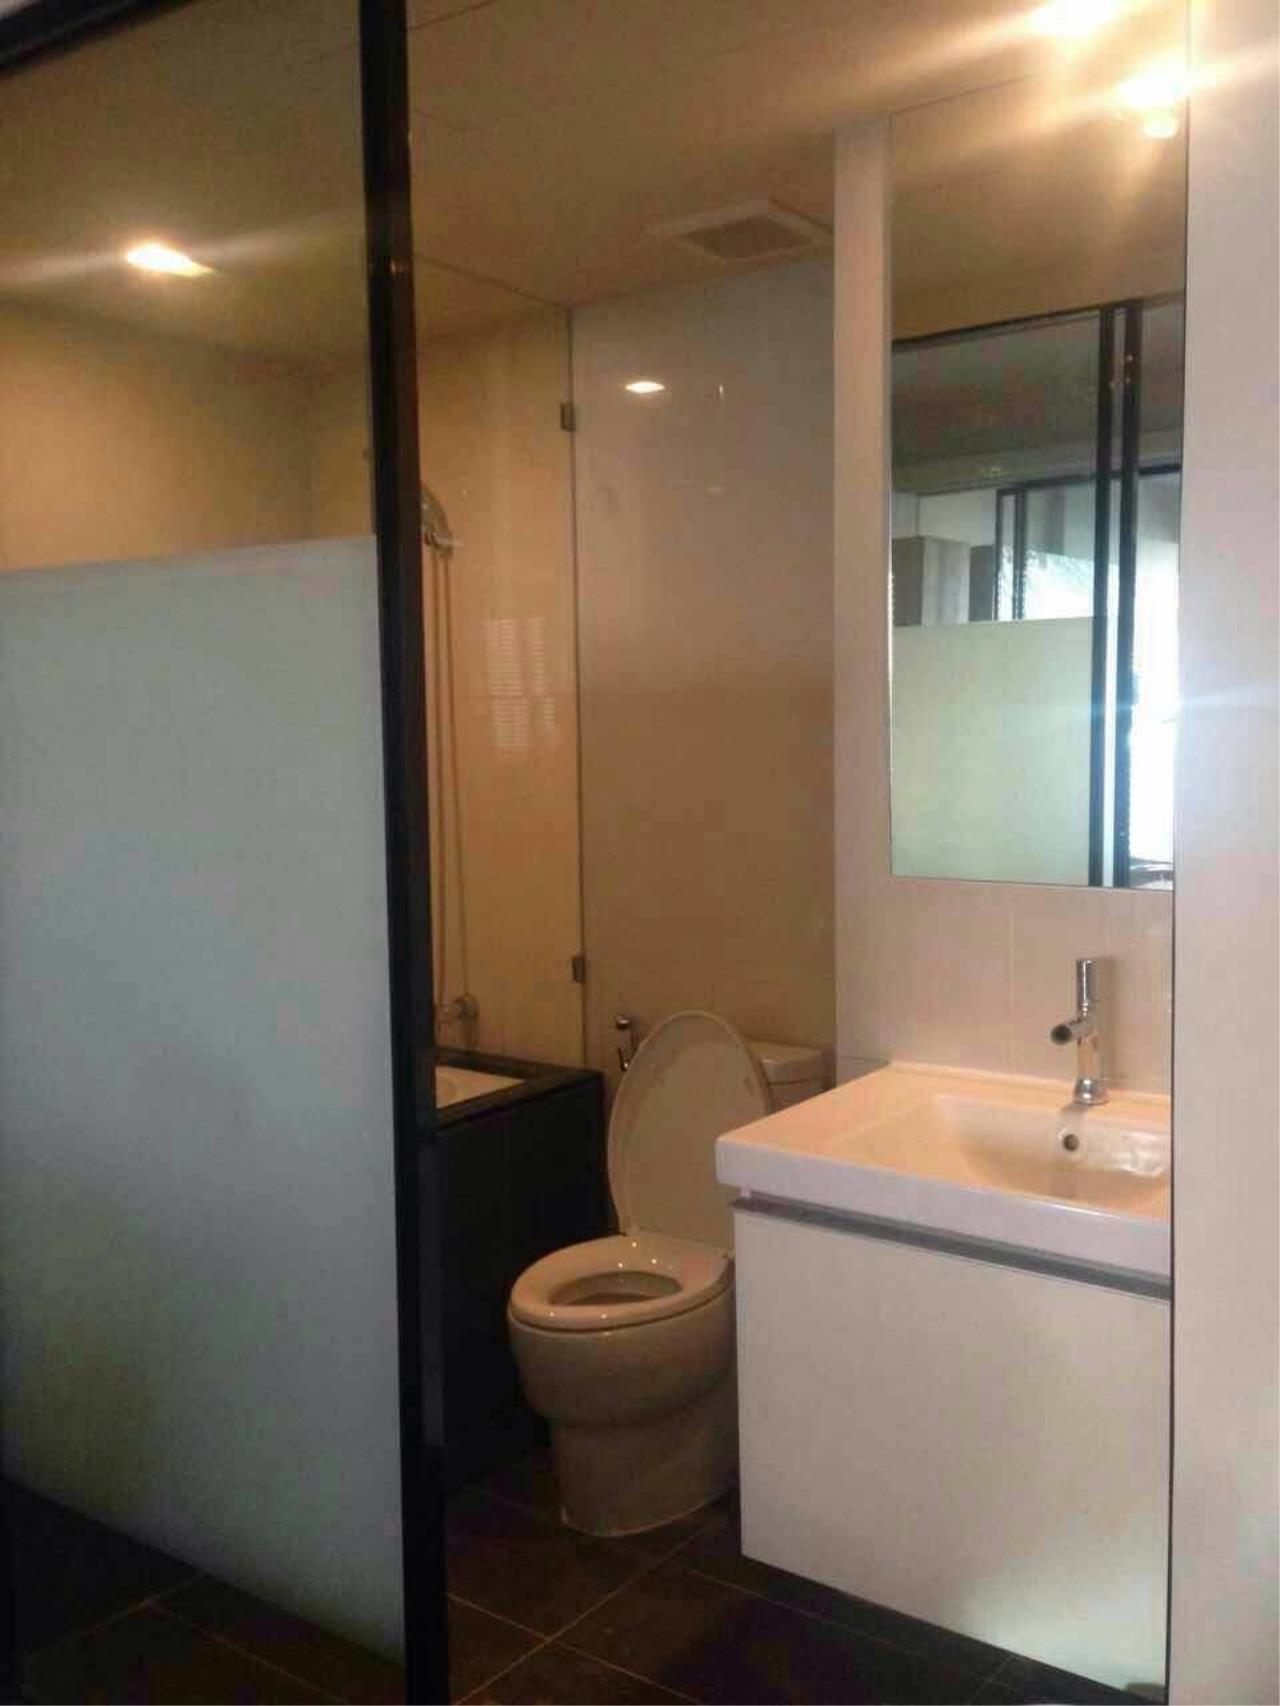 RE/MAX All Star Realty Agency's One Bed (42sqm) Circle S Condo for Rent BTS Asoke (400m) 9